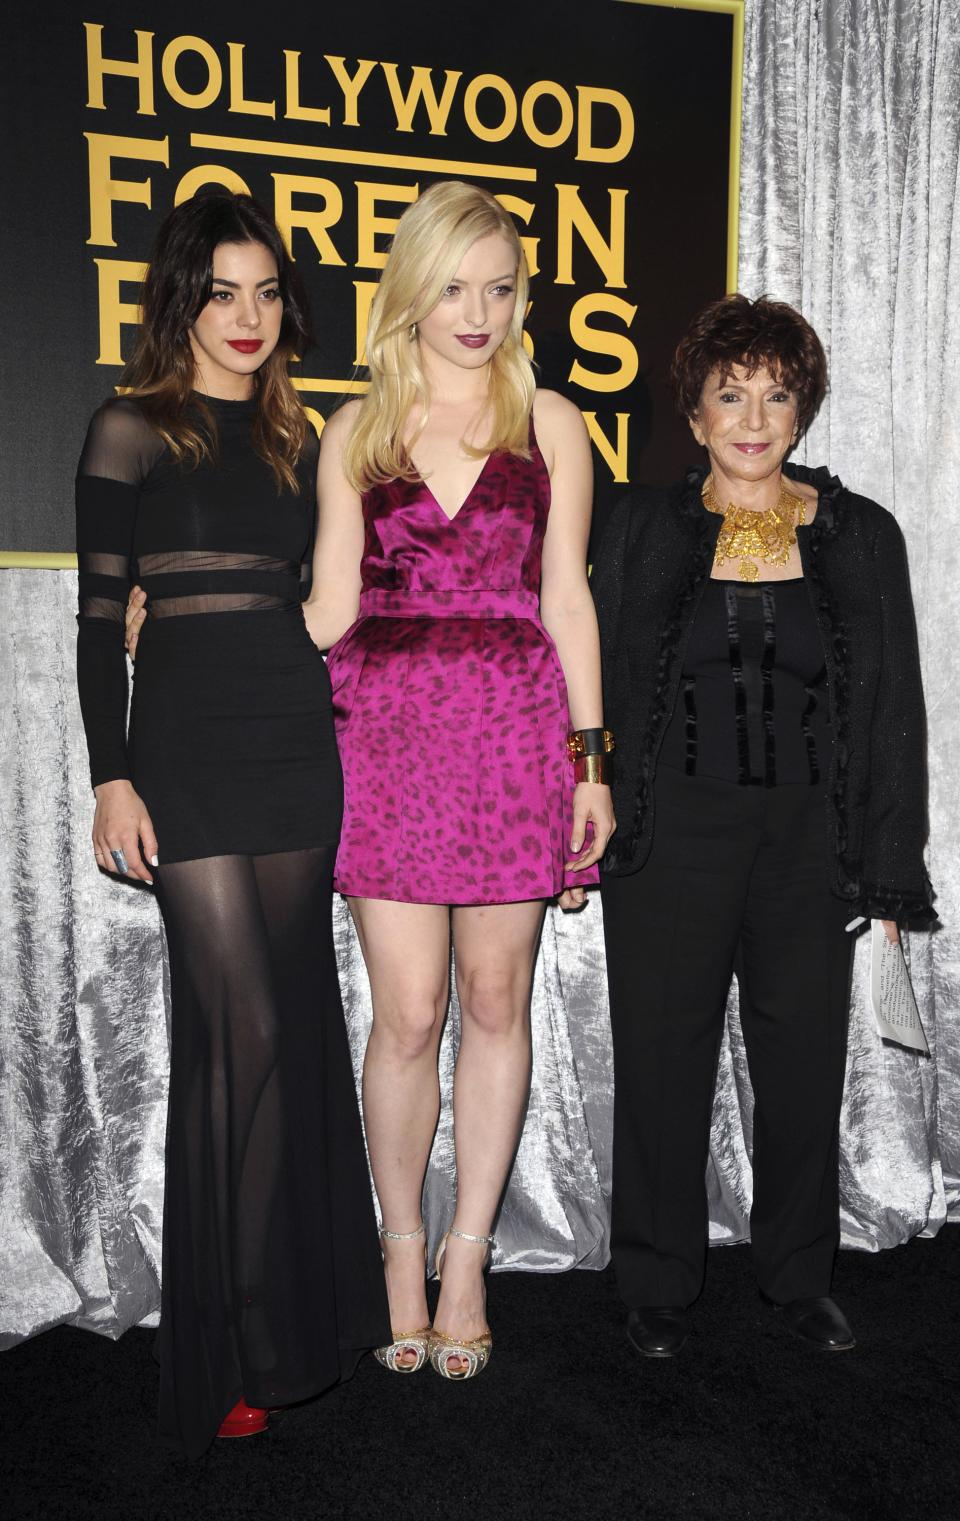 Gia Montegna, from left, Francesca Eastwood, and Dr. Aida Takla-O'Reilly attend HFPA and InStyle's Golden Globe award season celebration at Cecconi's on Thursday, Nov. 29, 2012, in West Hollywood, Calif. (Photo by Katy Winn/Invision/AP)